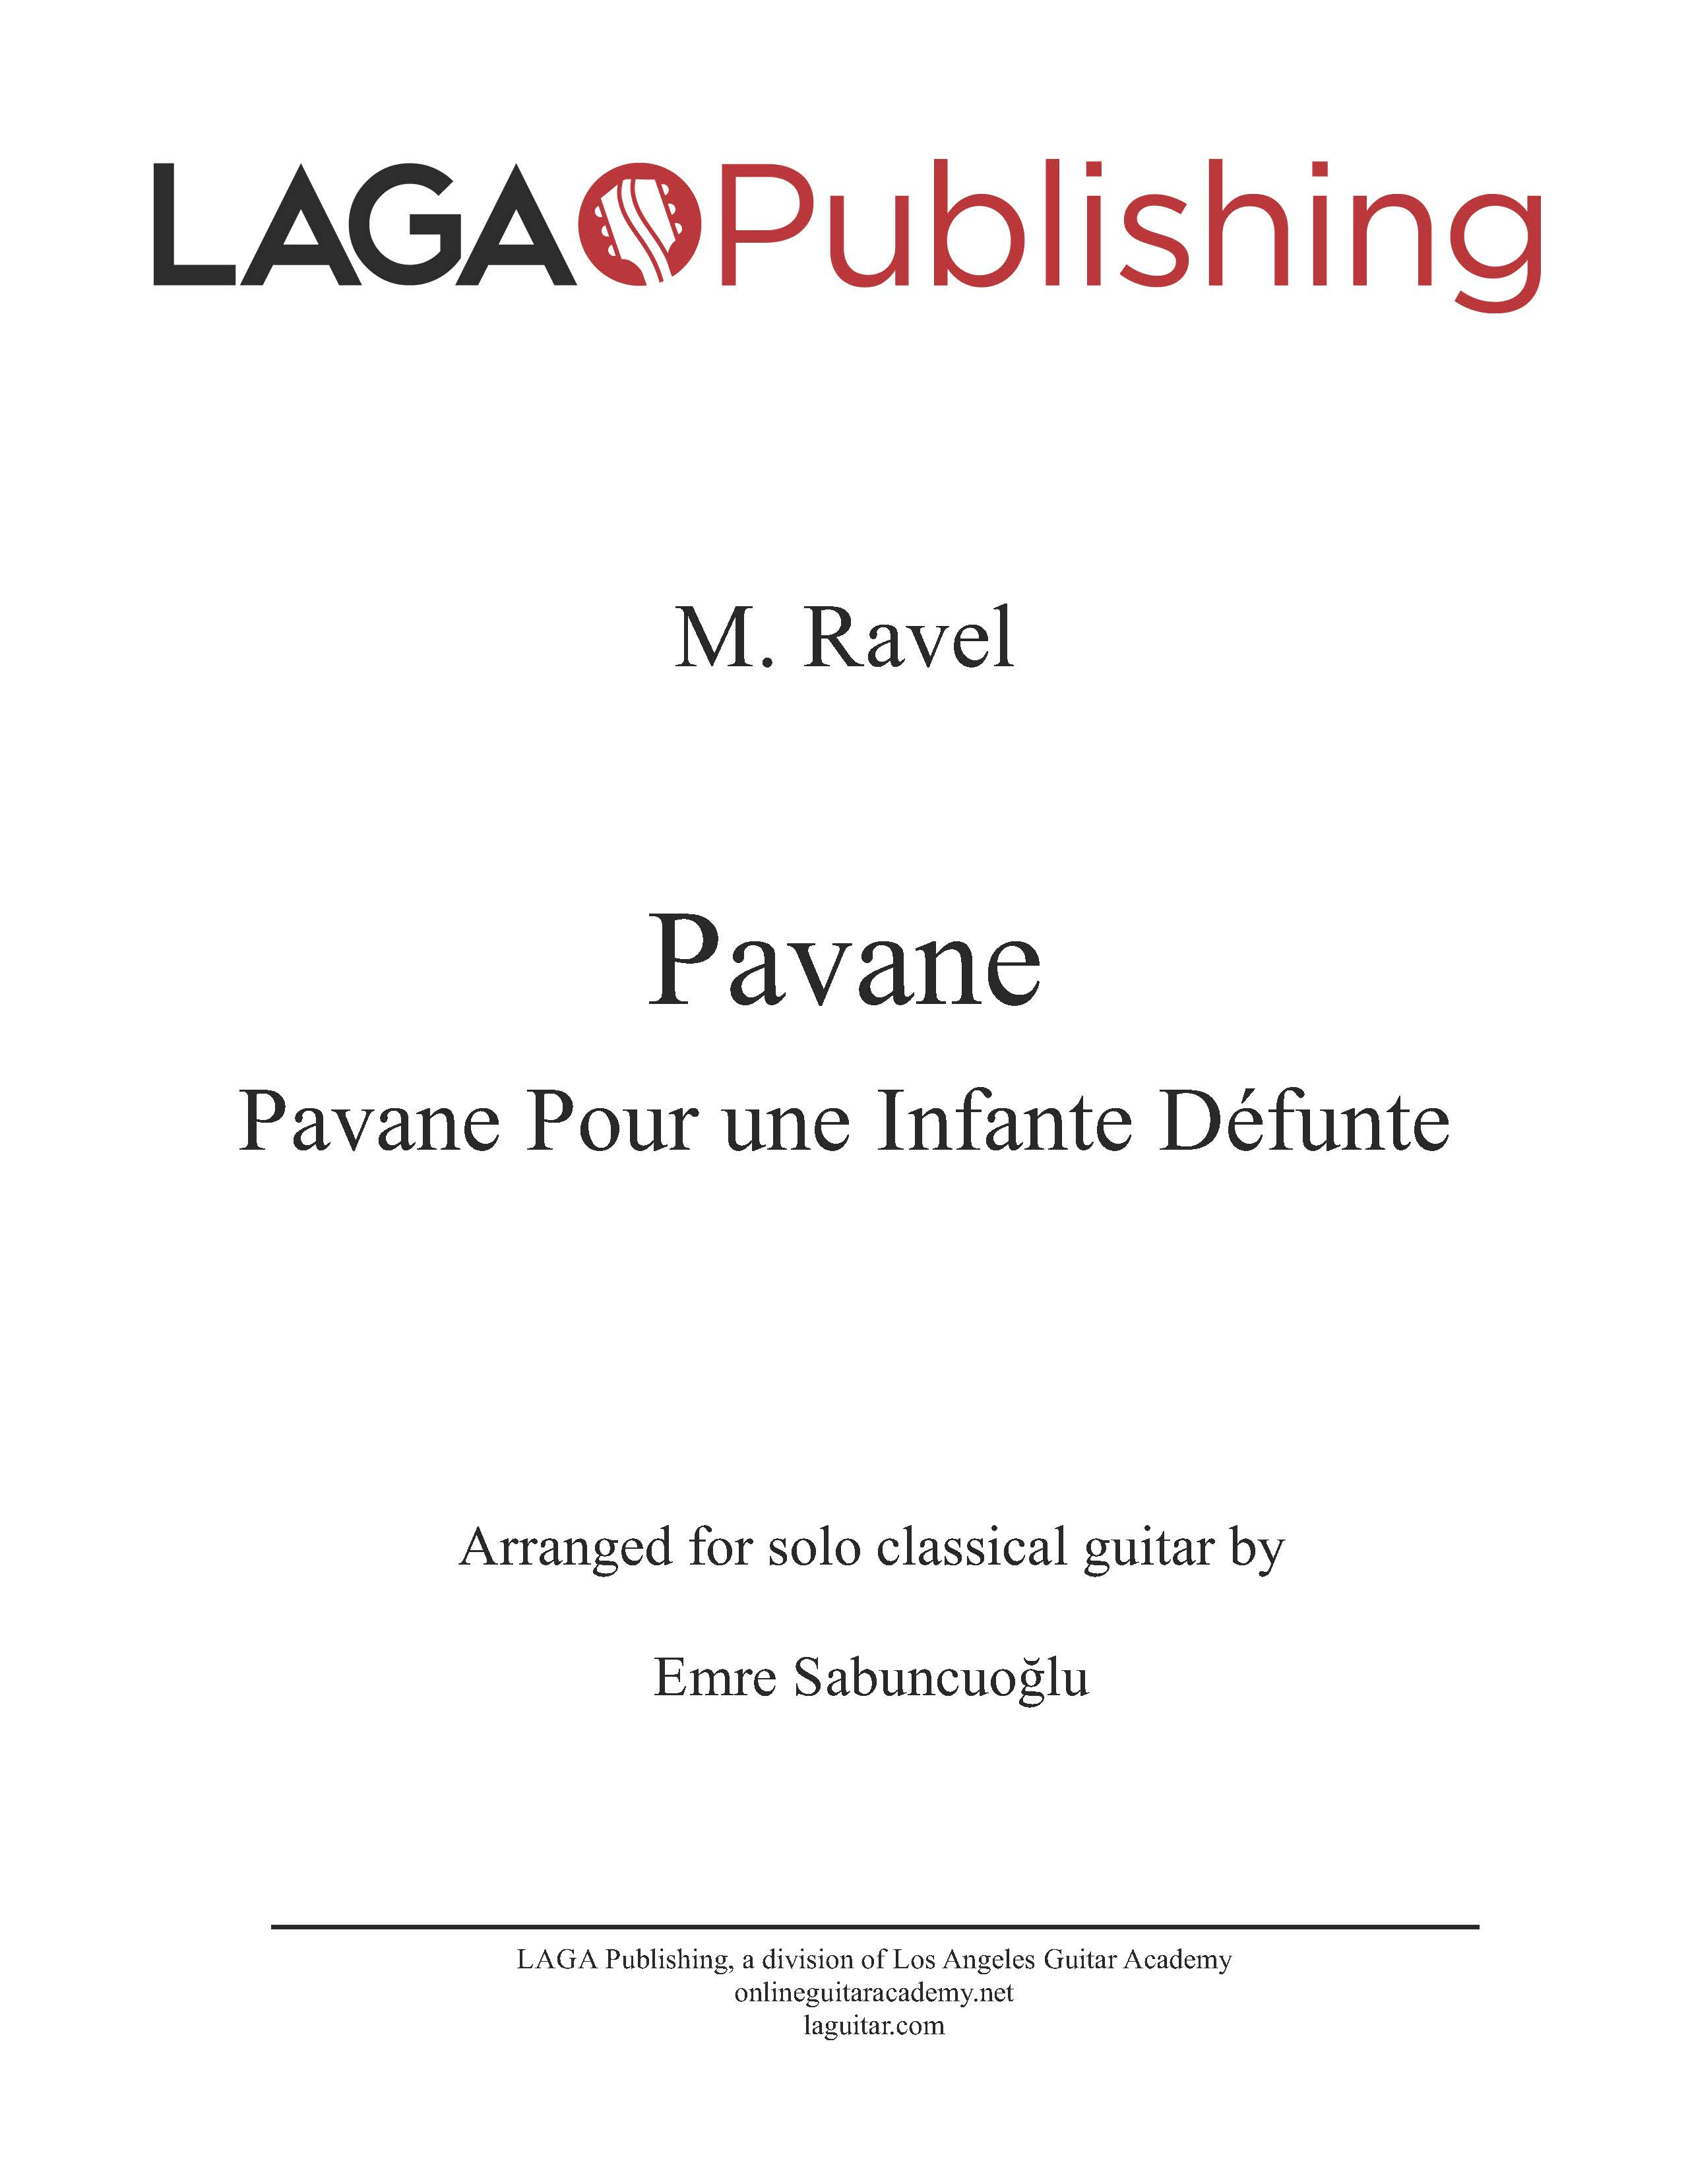 LAGA-Publishing-Ravel-Pavane-Score-and-Tab